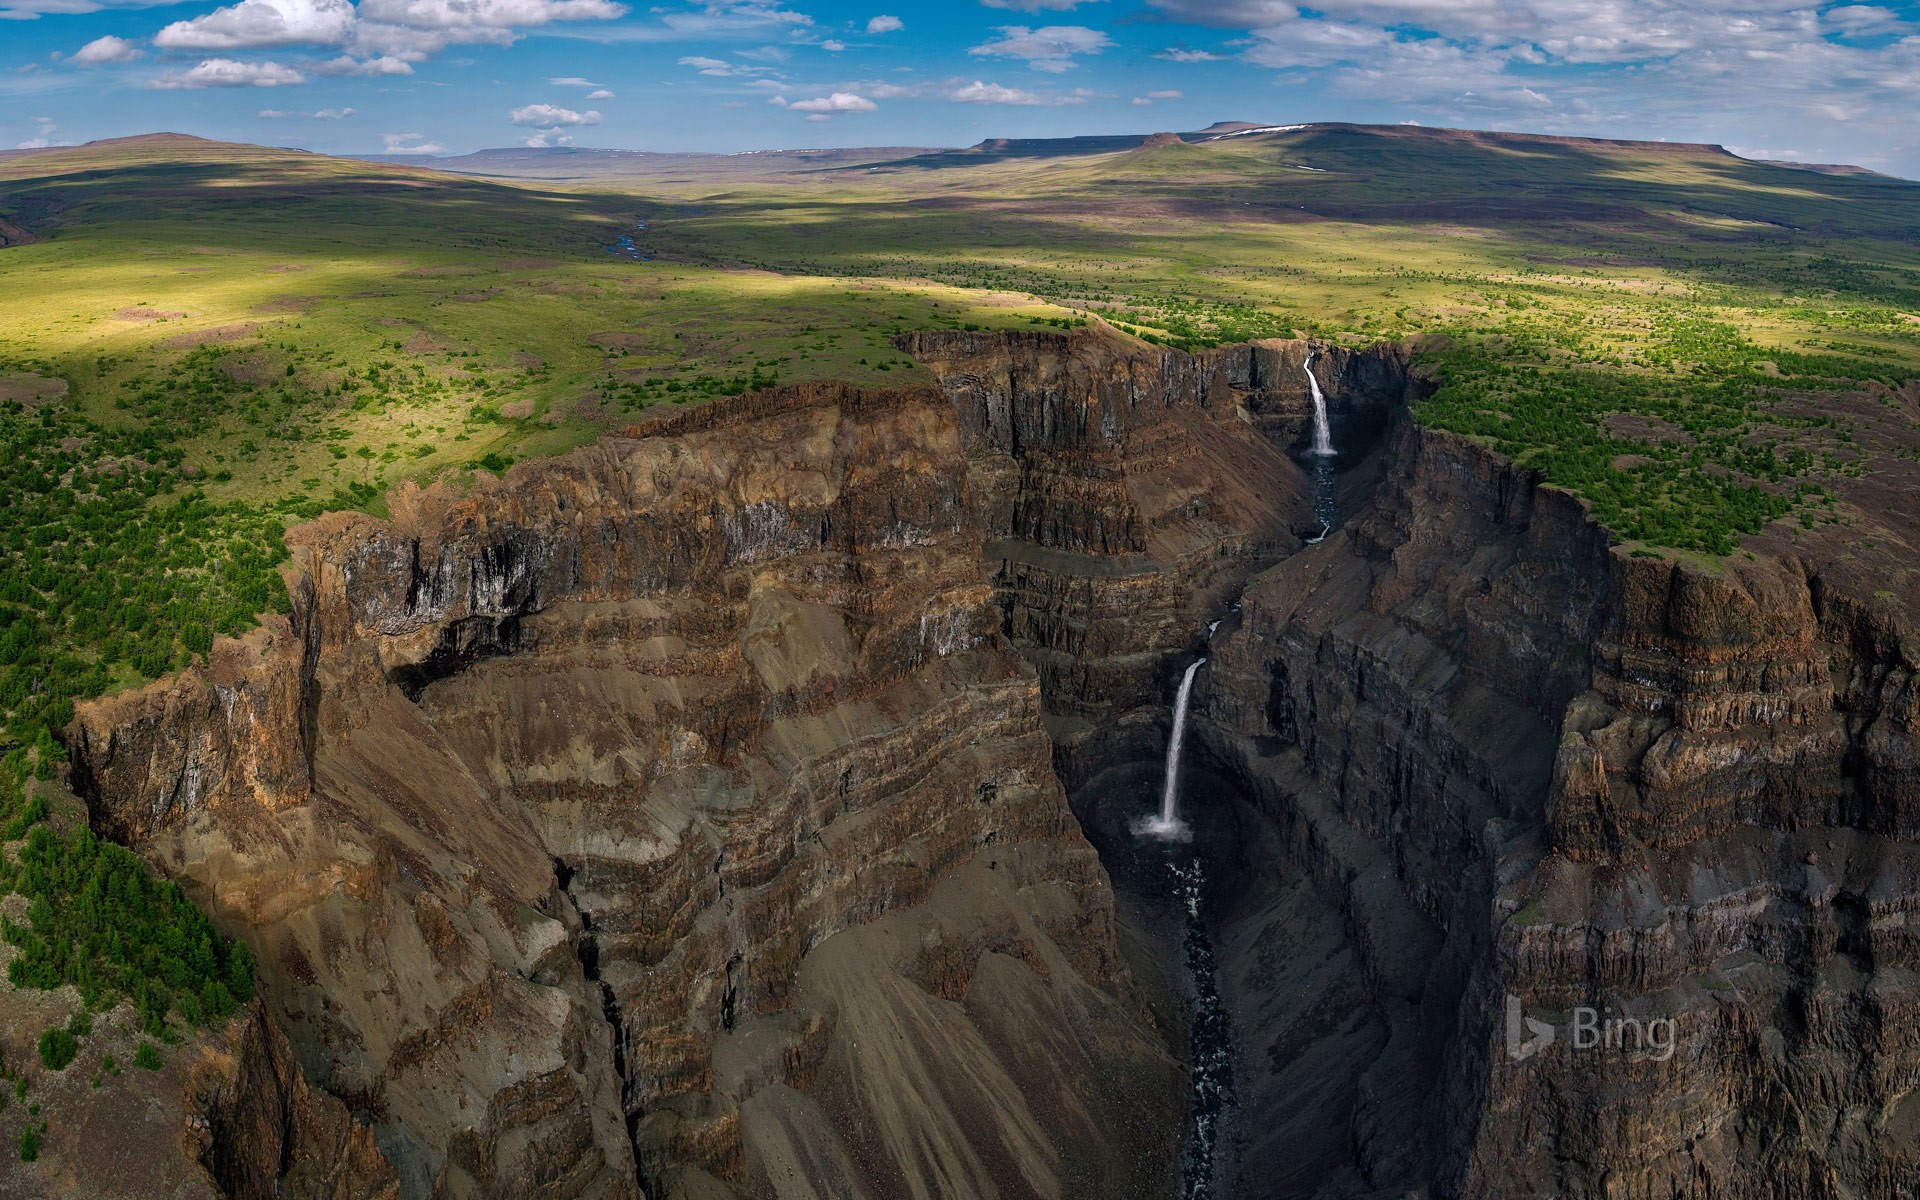 Waterfalls in a canyon of Siberia's Putorana Plateau, Russia (© Sergey Gorshkov/Minden Pictures)